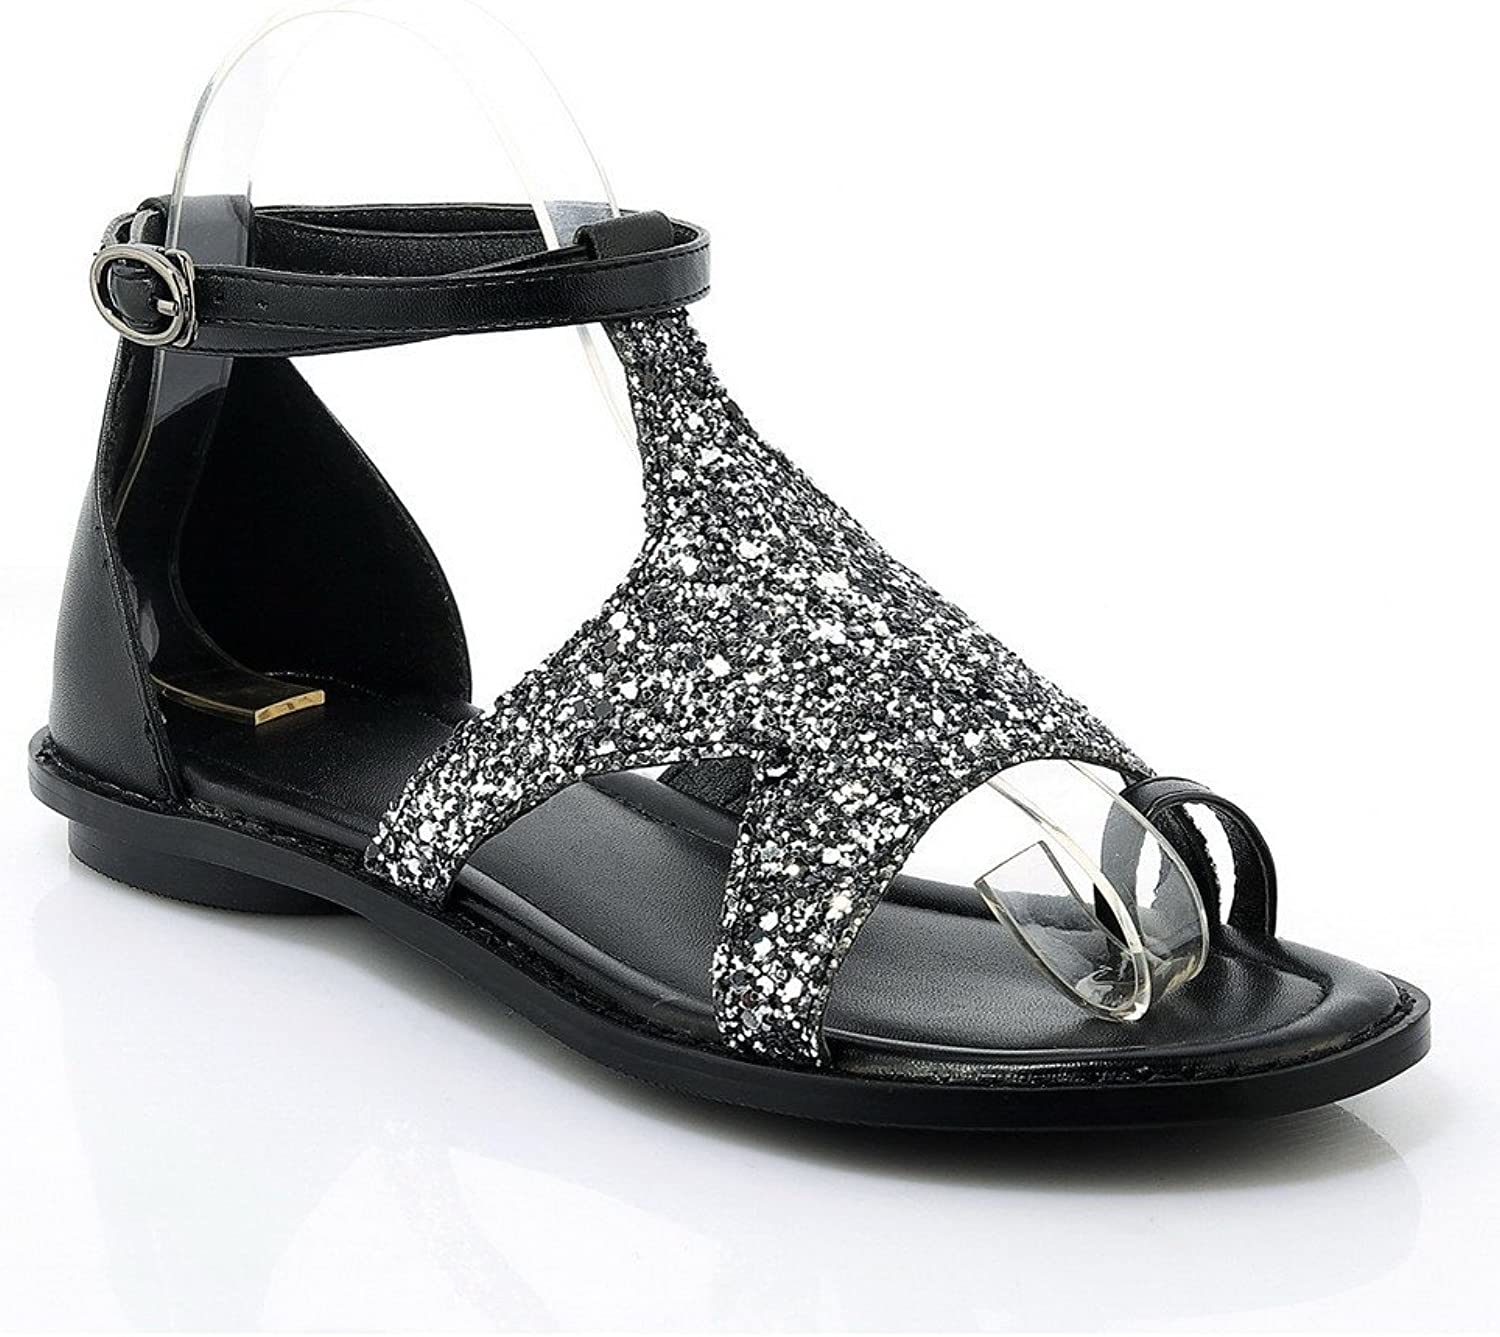 AmoonyFashion Women's No-Heel Soft Material Assorted colors Buckle Open Toe Sandals